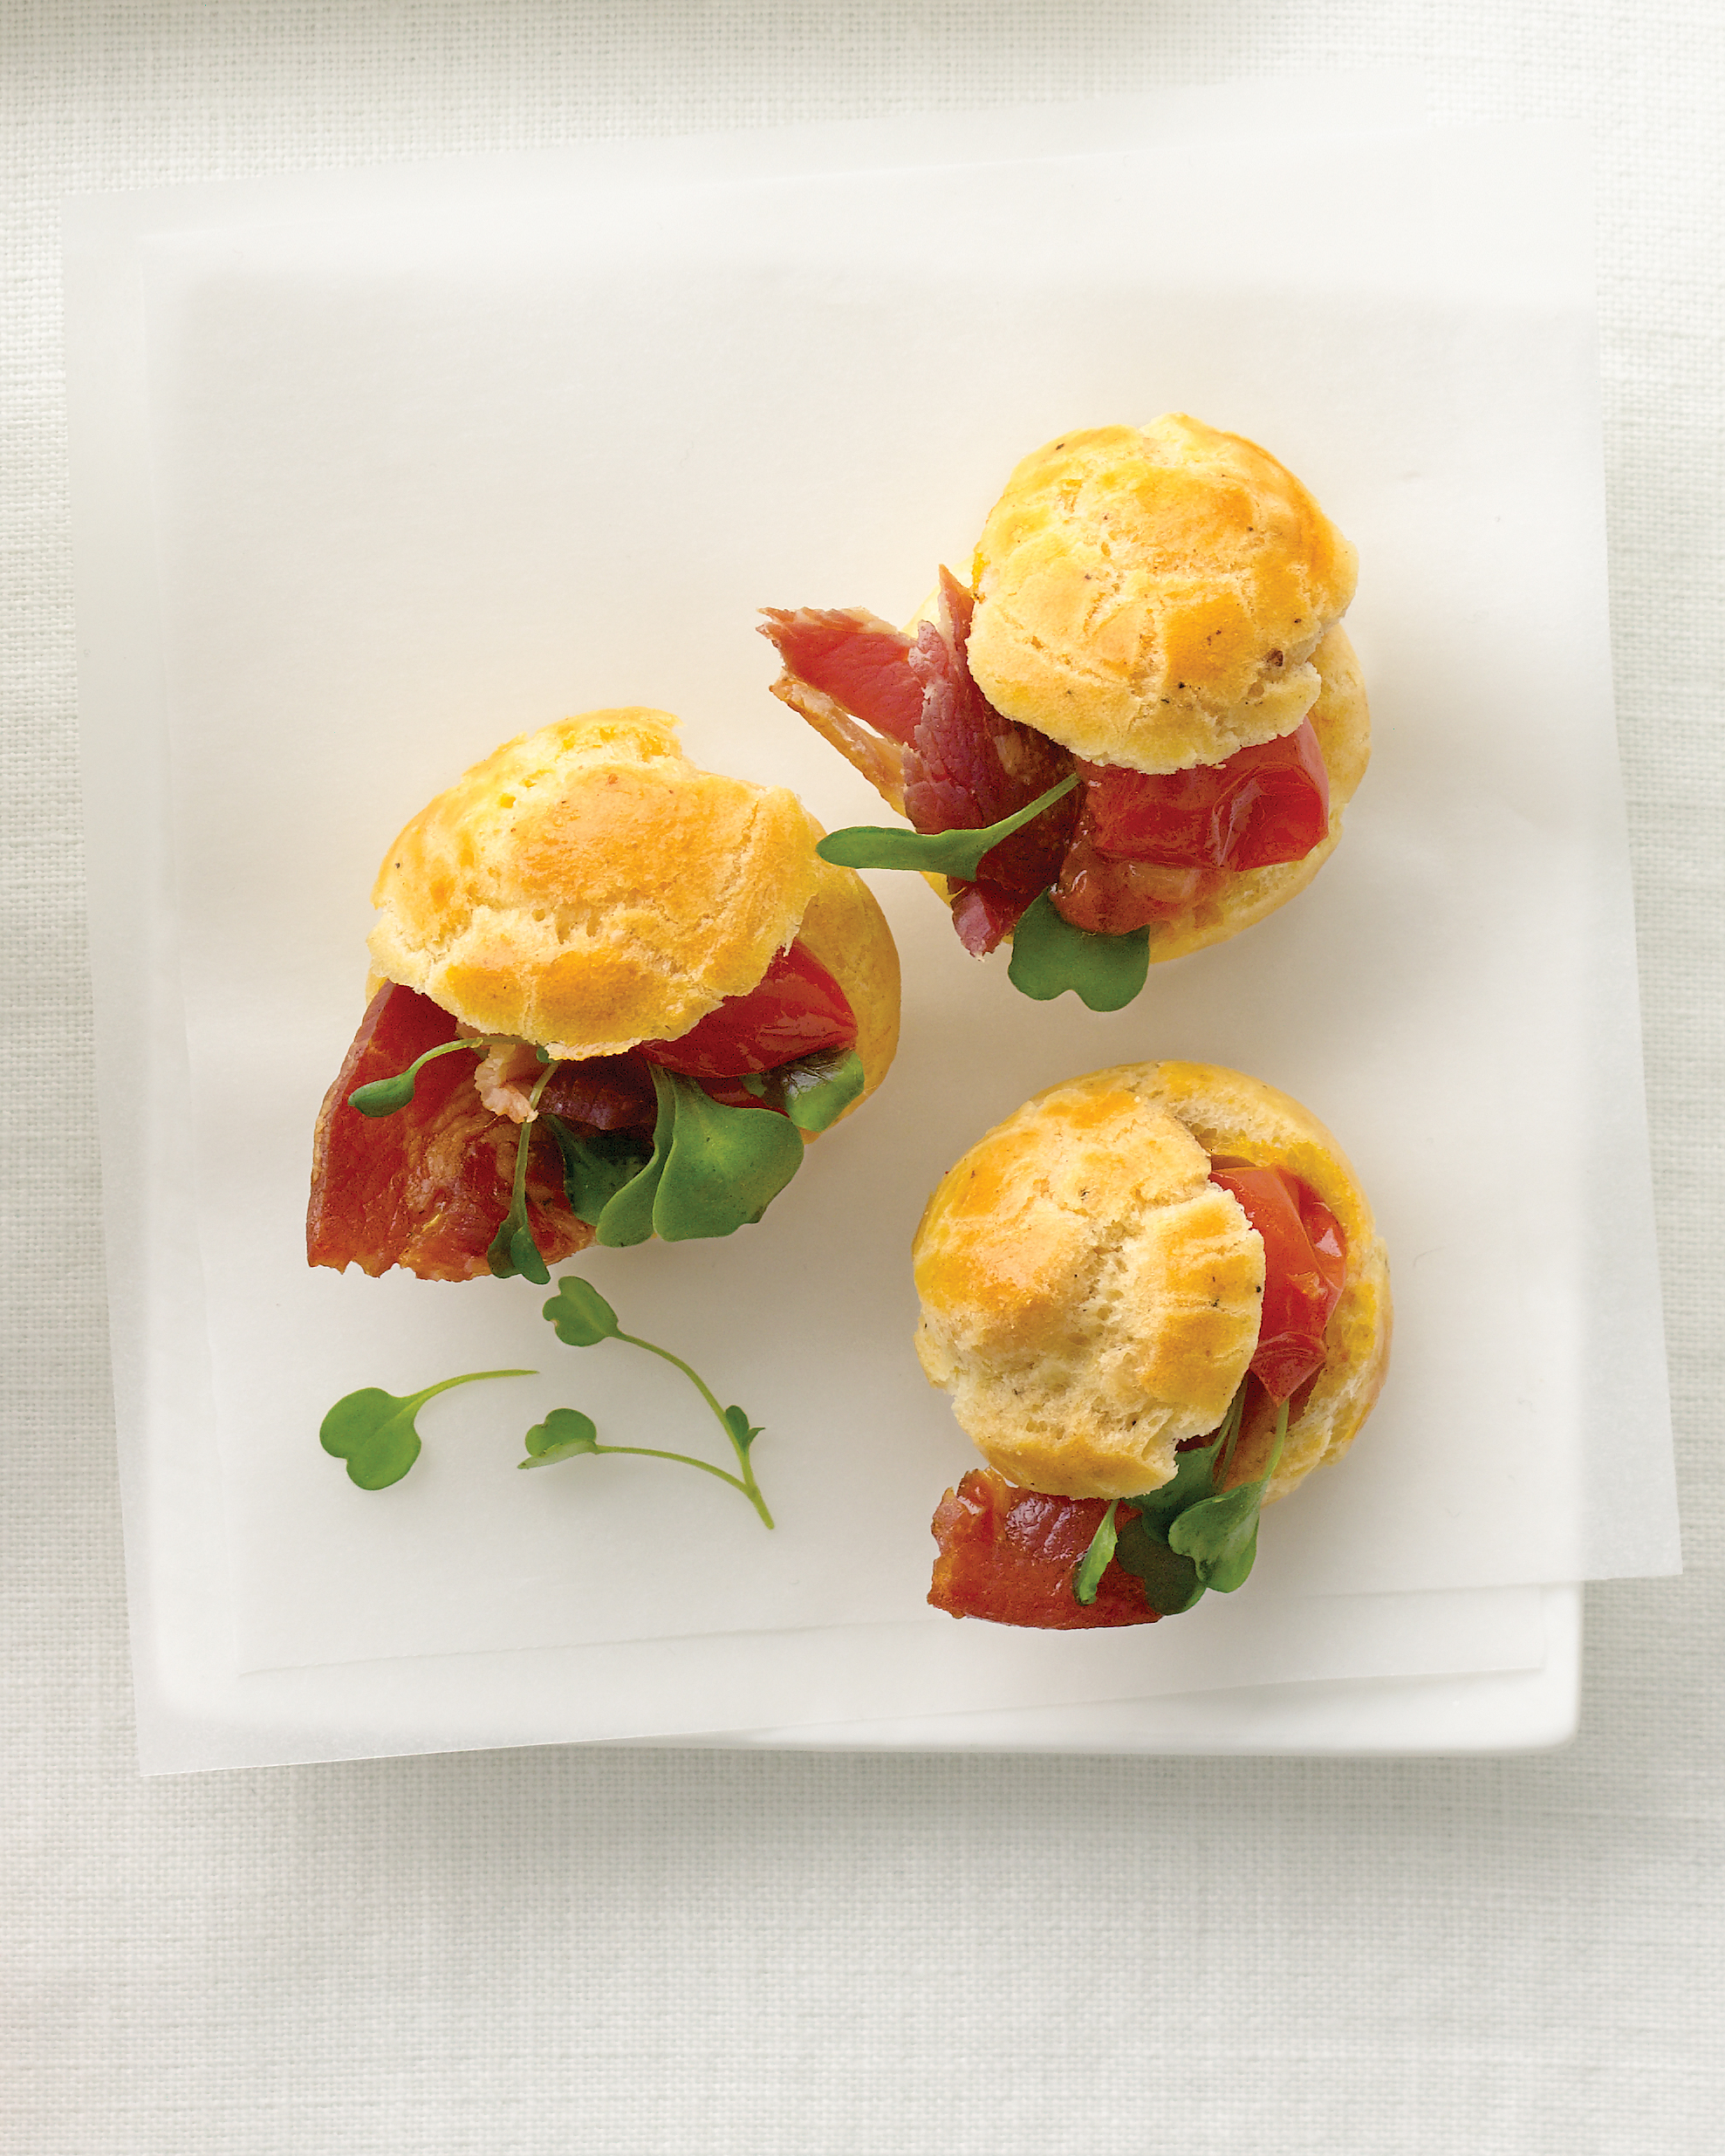 Black Pepper Gougeres with Pancetta and Tomato